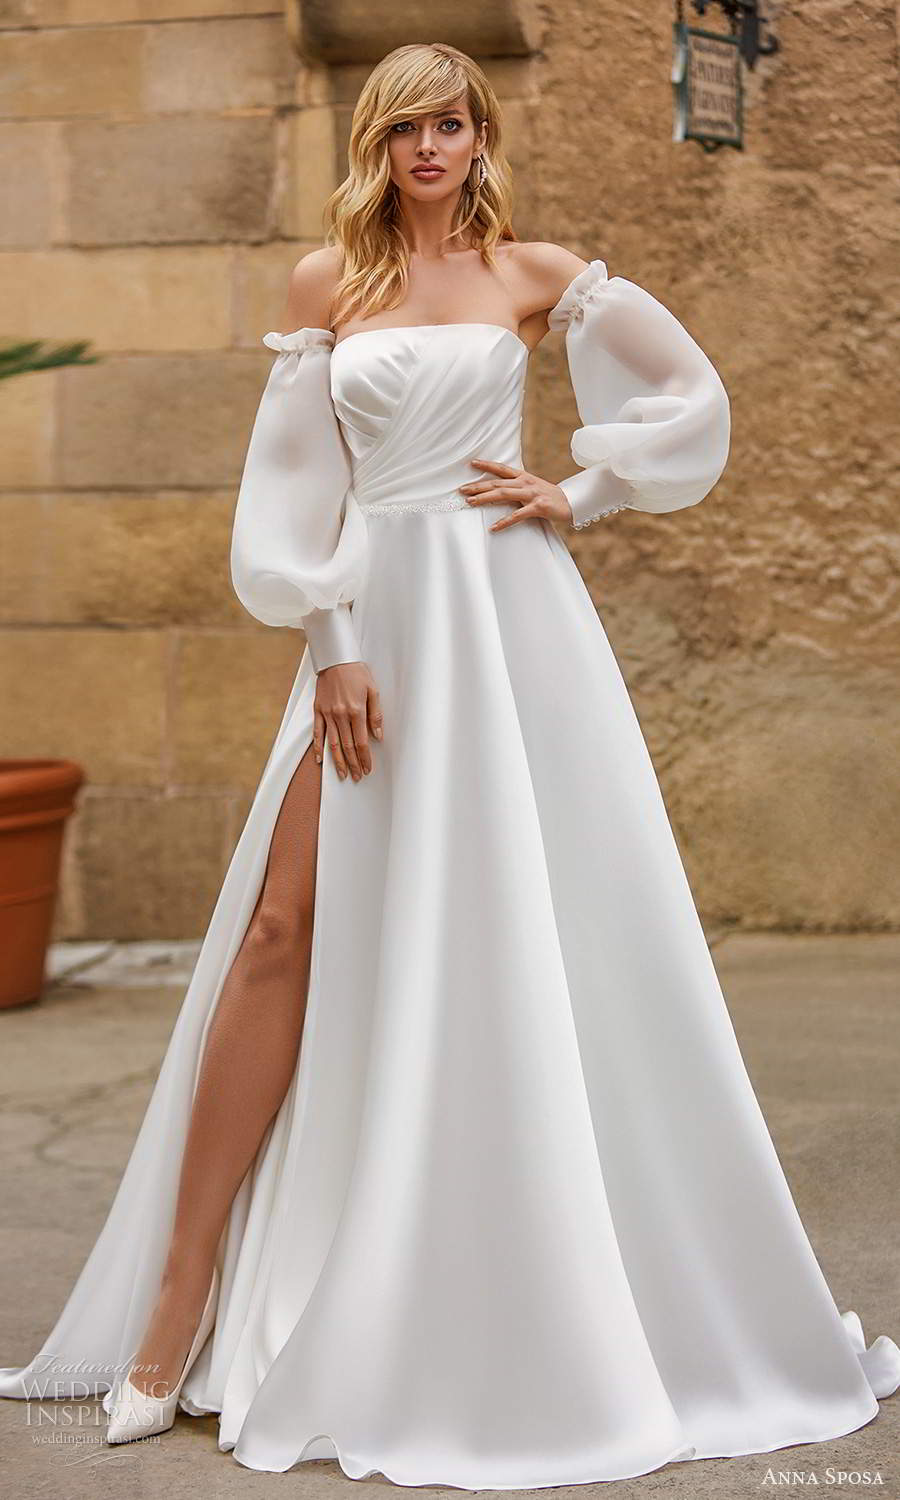 anna sposa 2021 bridal detached bishop sleeves strapless straight across neckline ruched bodice minimalist a line ball gown wedding dress slit skirt chapel train (15) mv